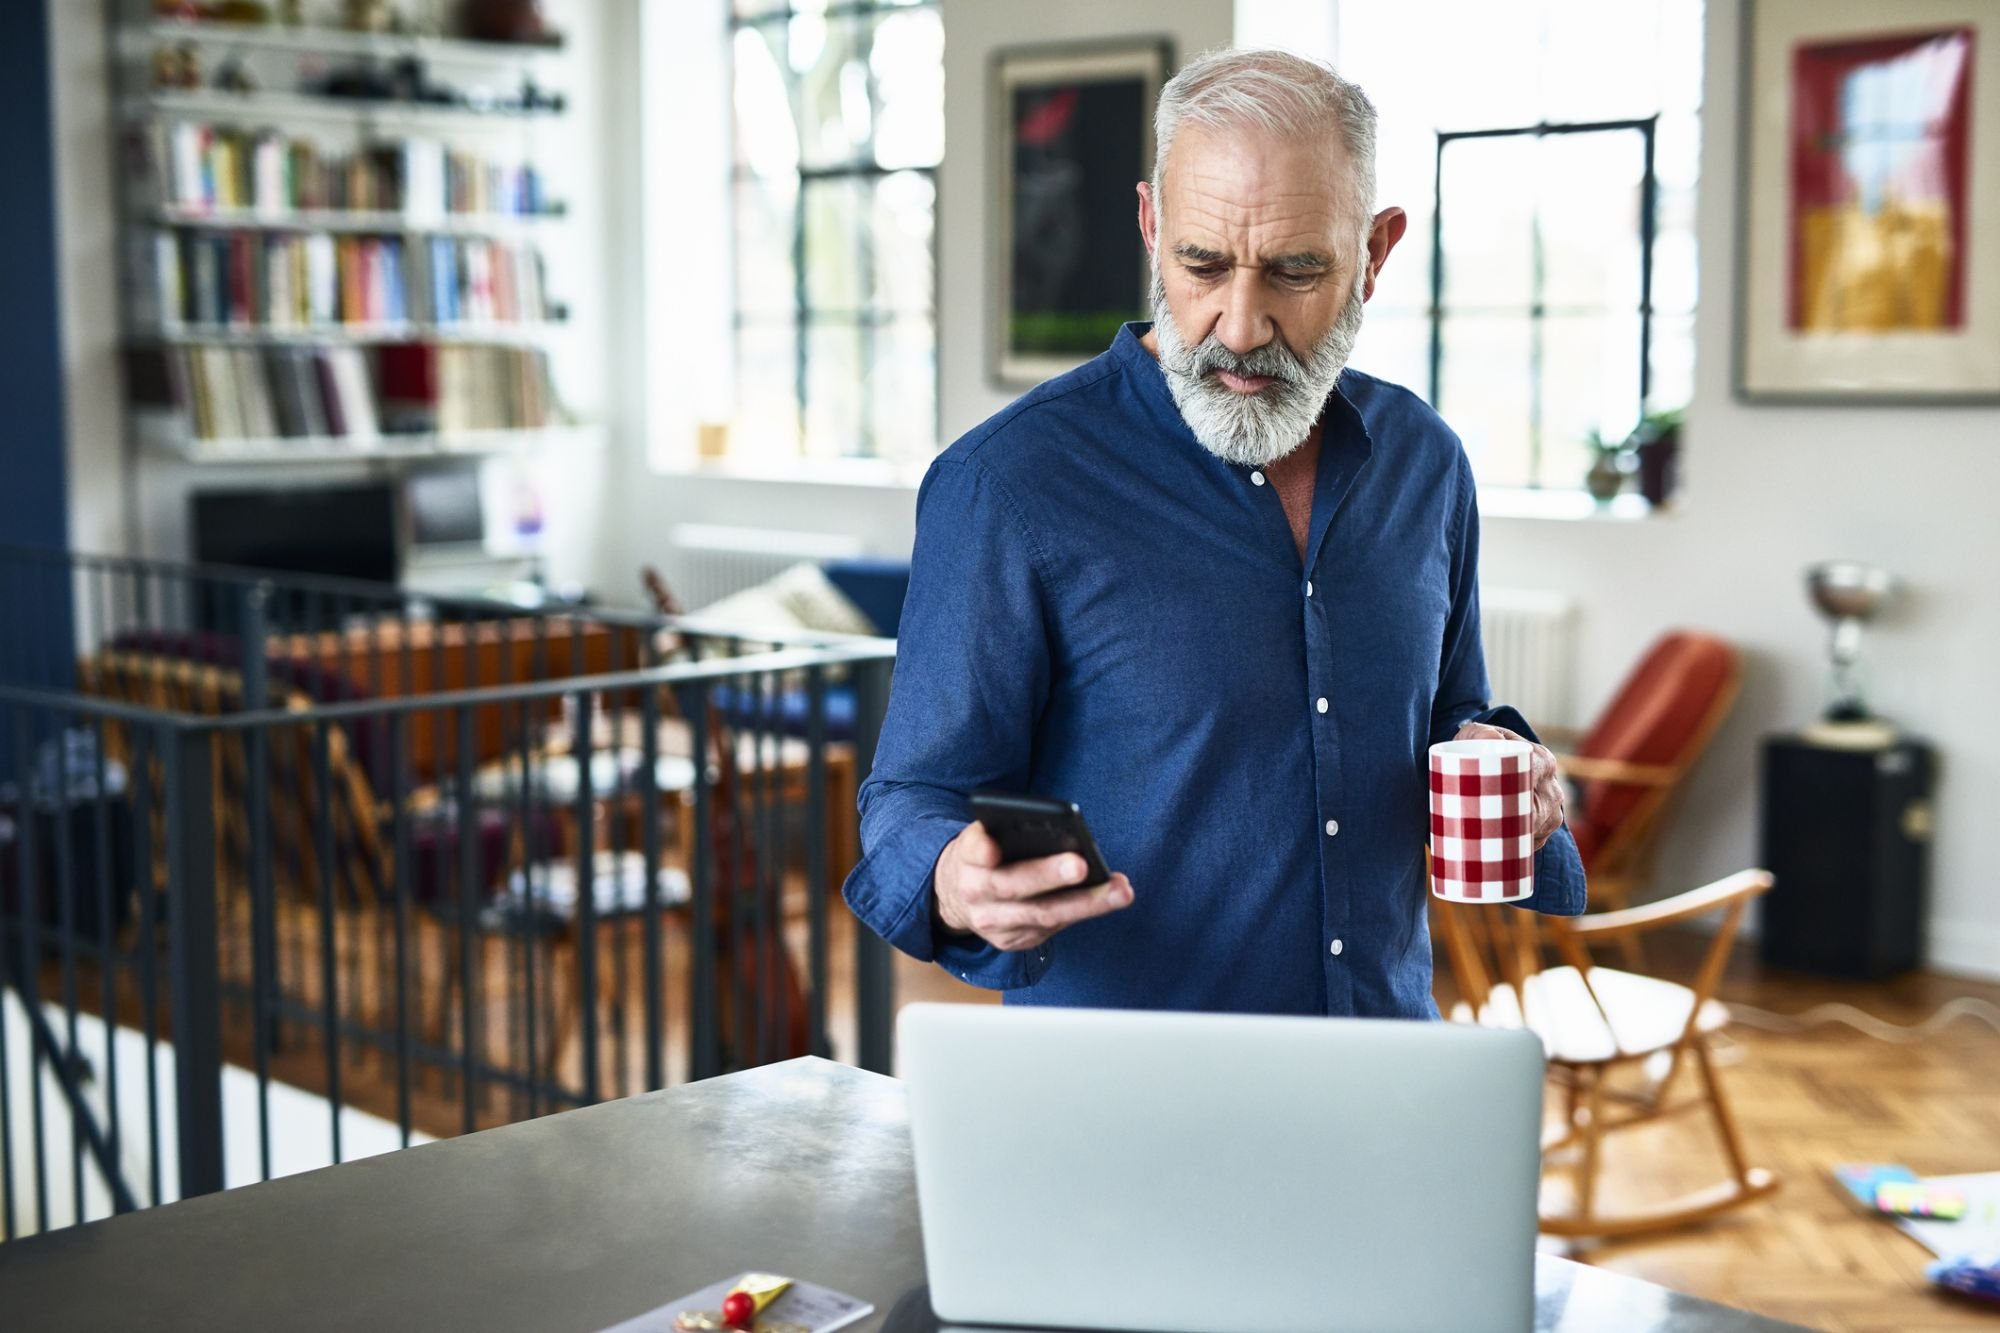 Thinking of Starting a Remote Business? Think Very Carefully.